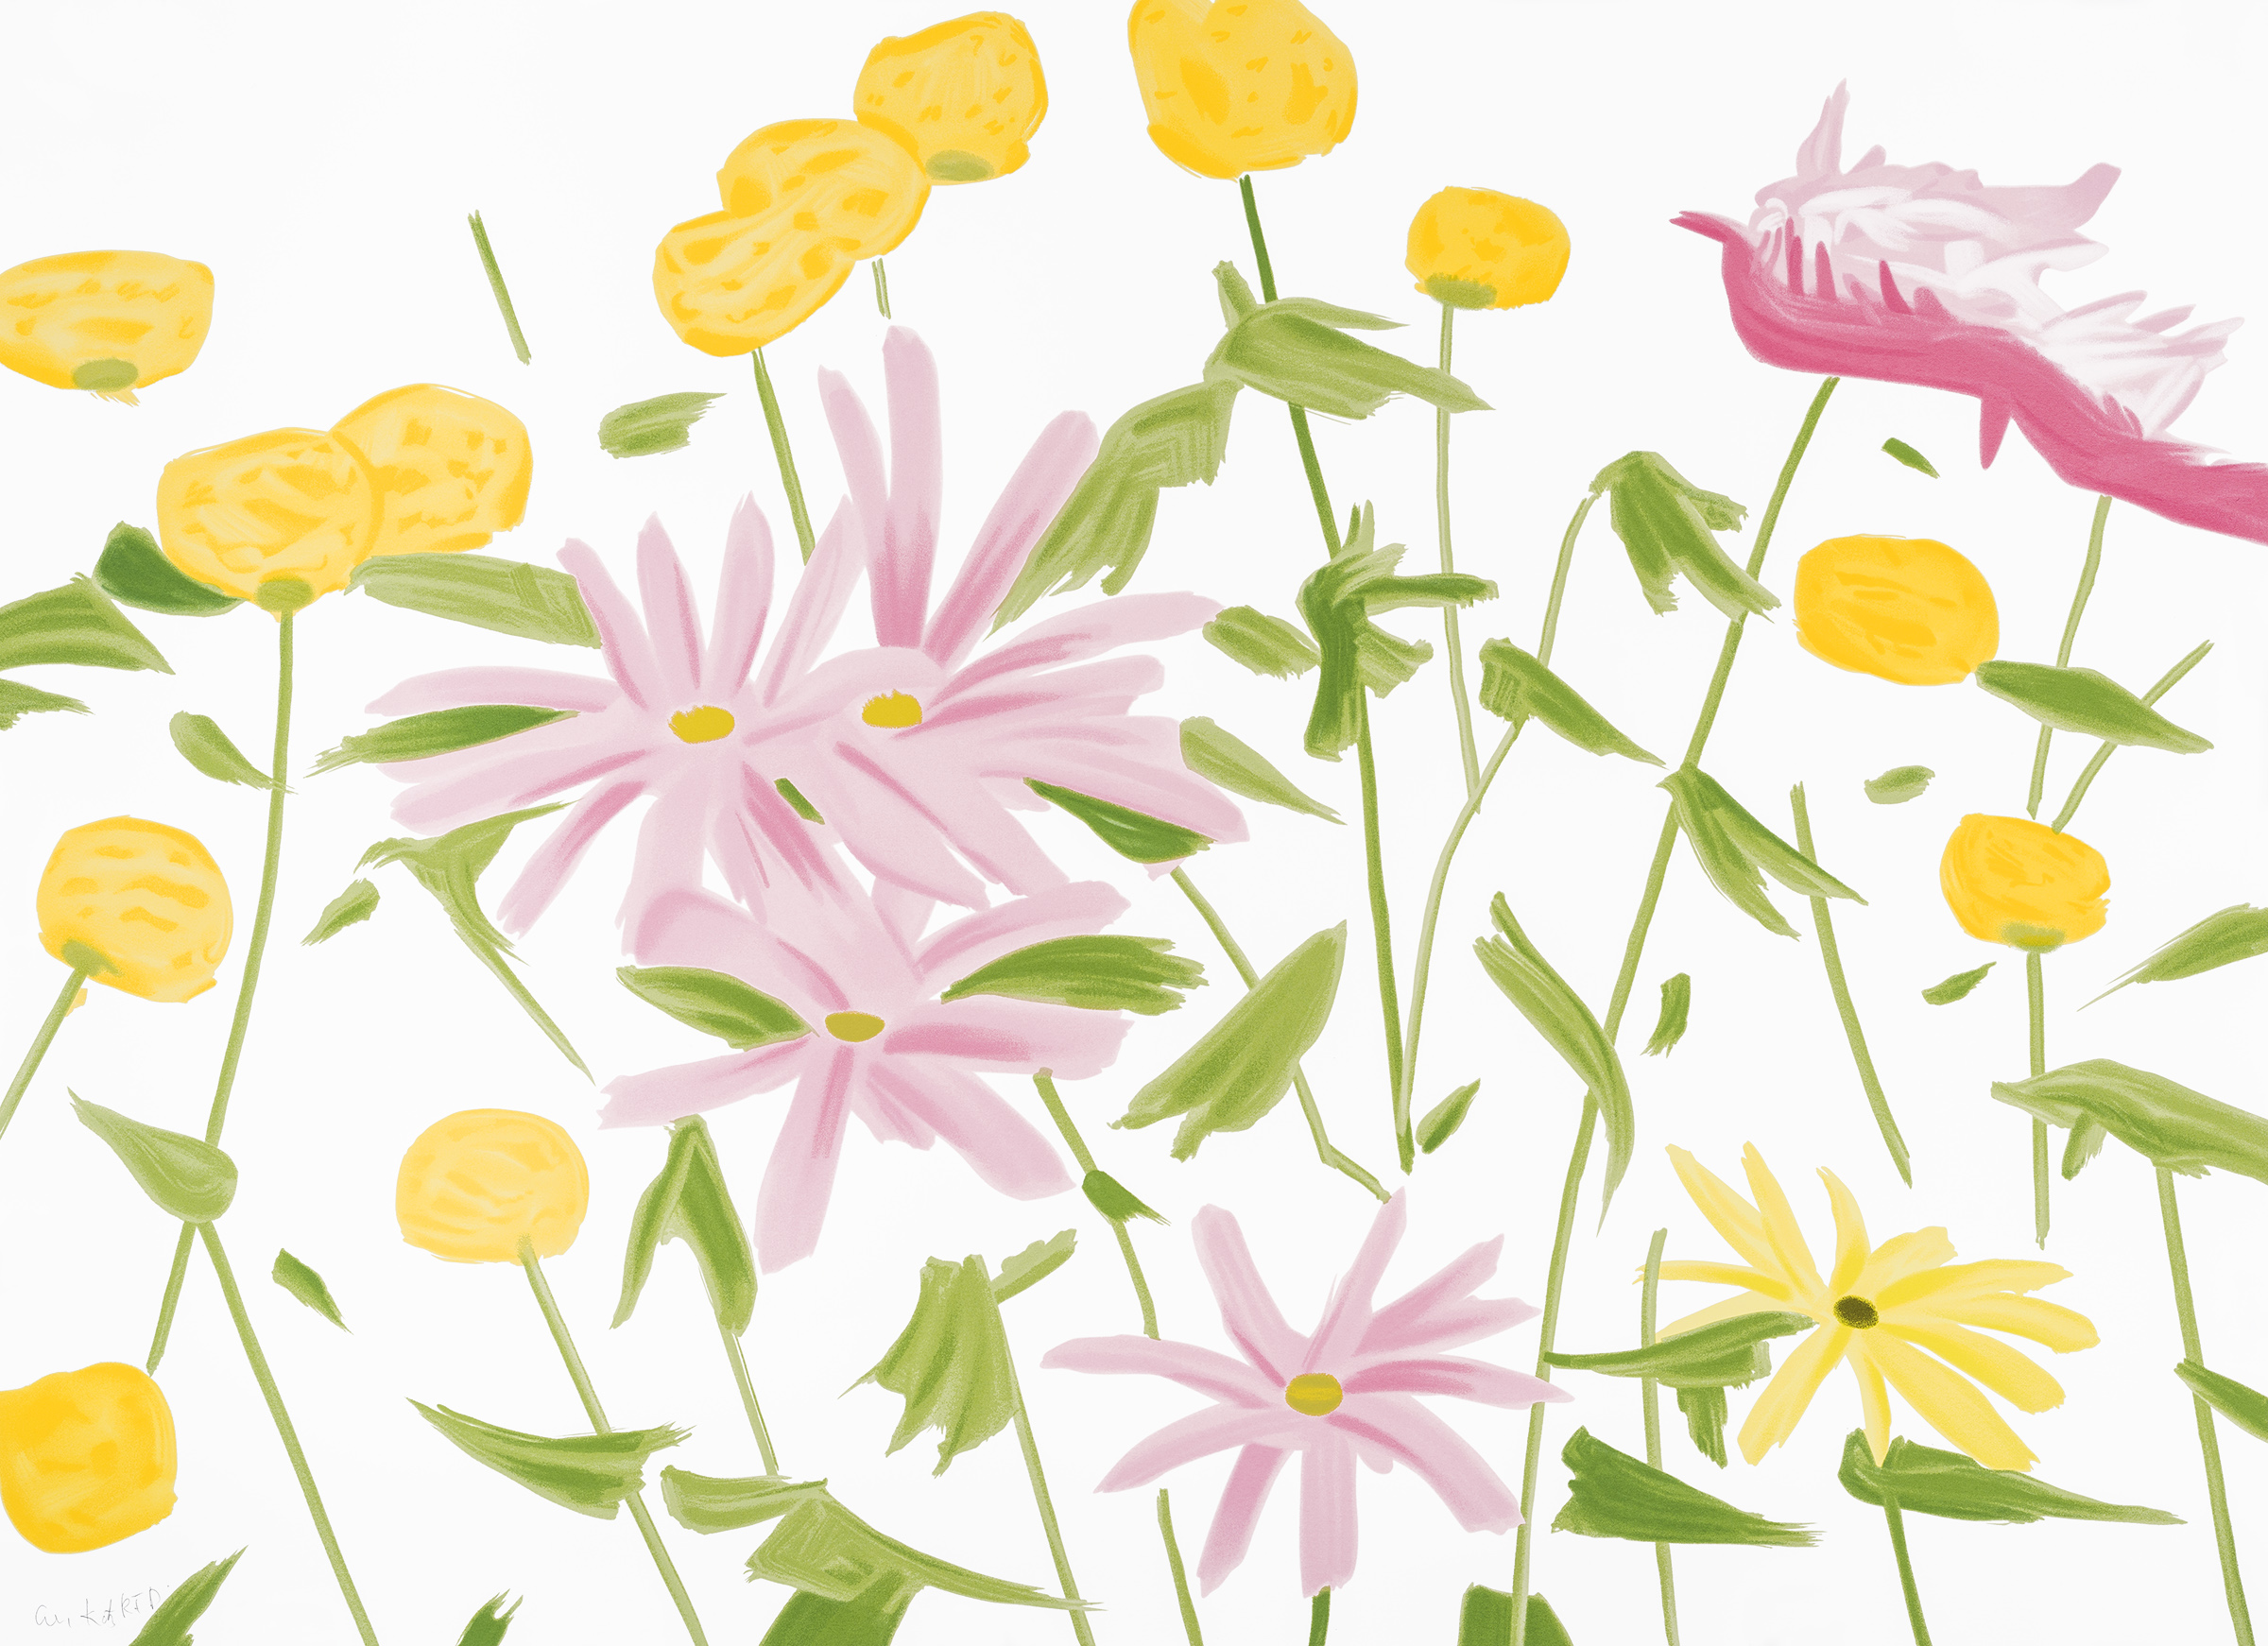 Alex Katz  Spring Flowers , 2017 24-color silkscreen on Saunders Waterford 425 gsm paper 40 x 55 in. edition of 60